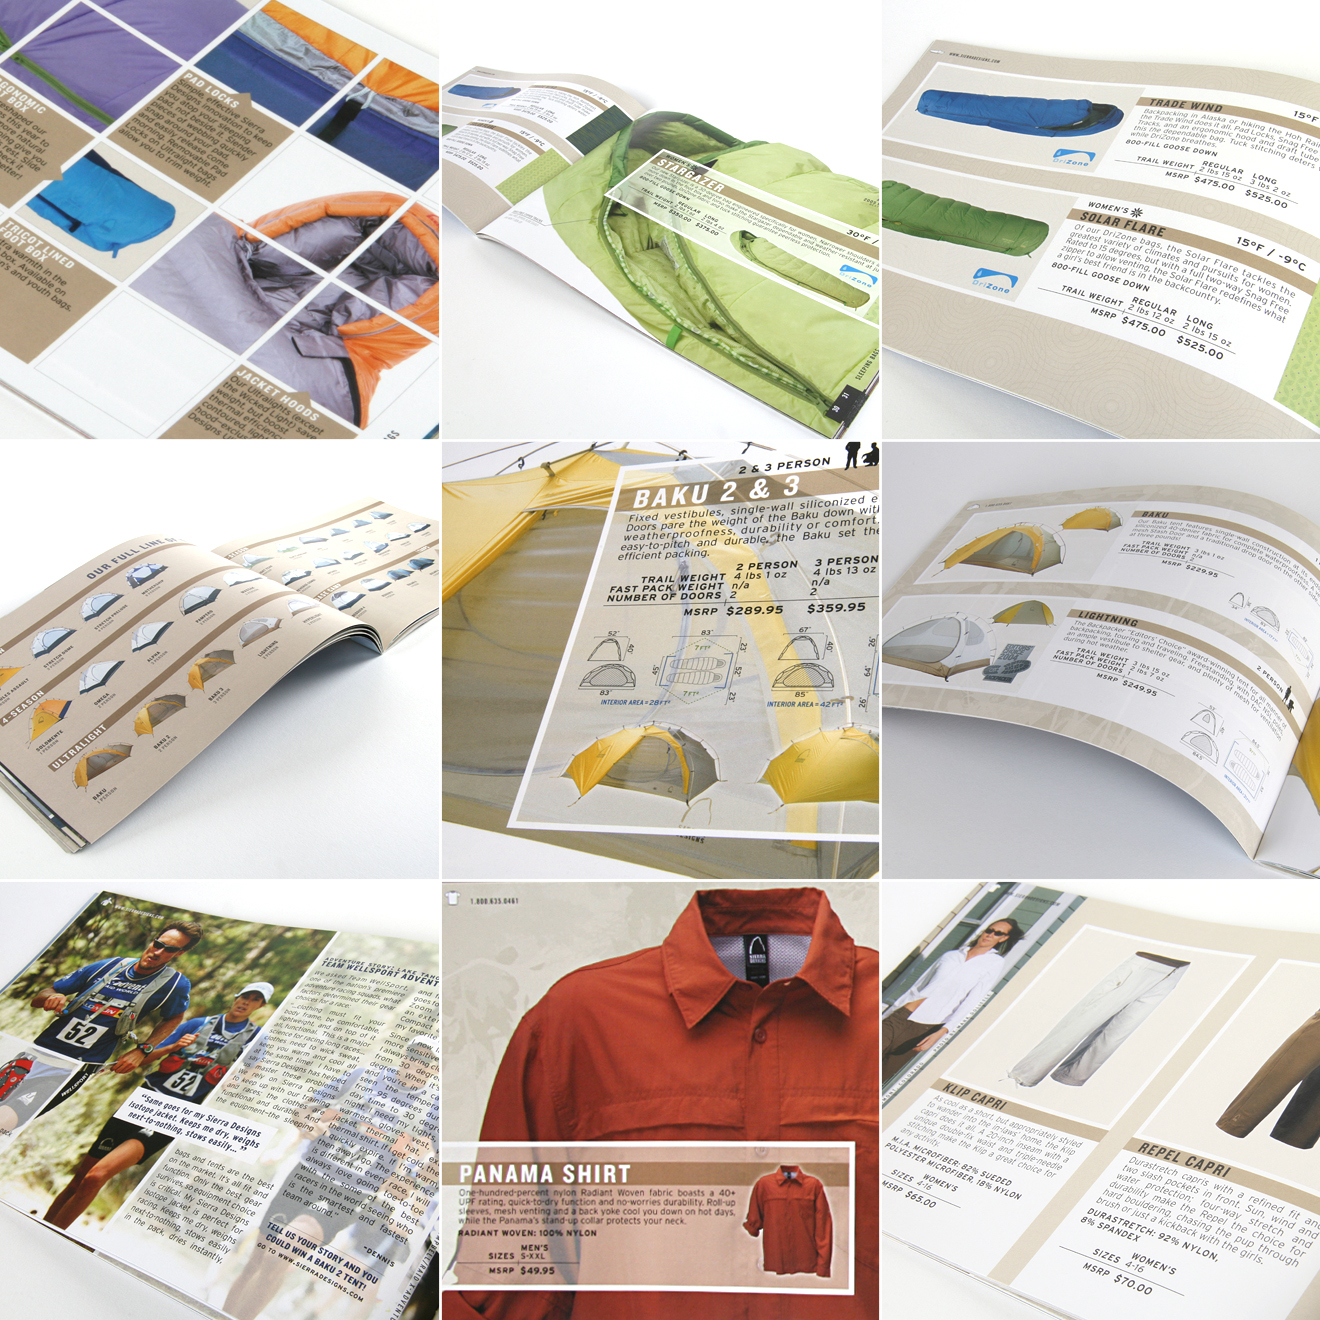 SD Spring 2006 Catalog by pterisaur